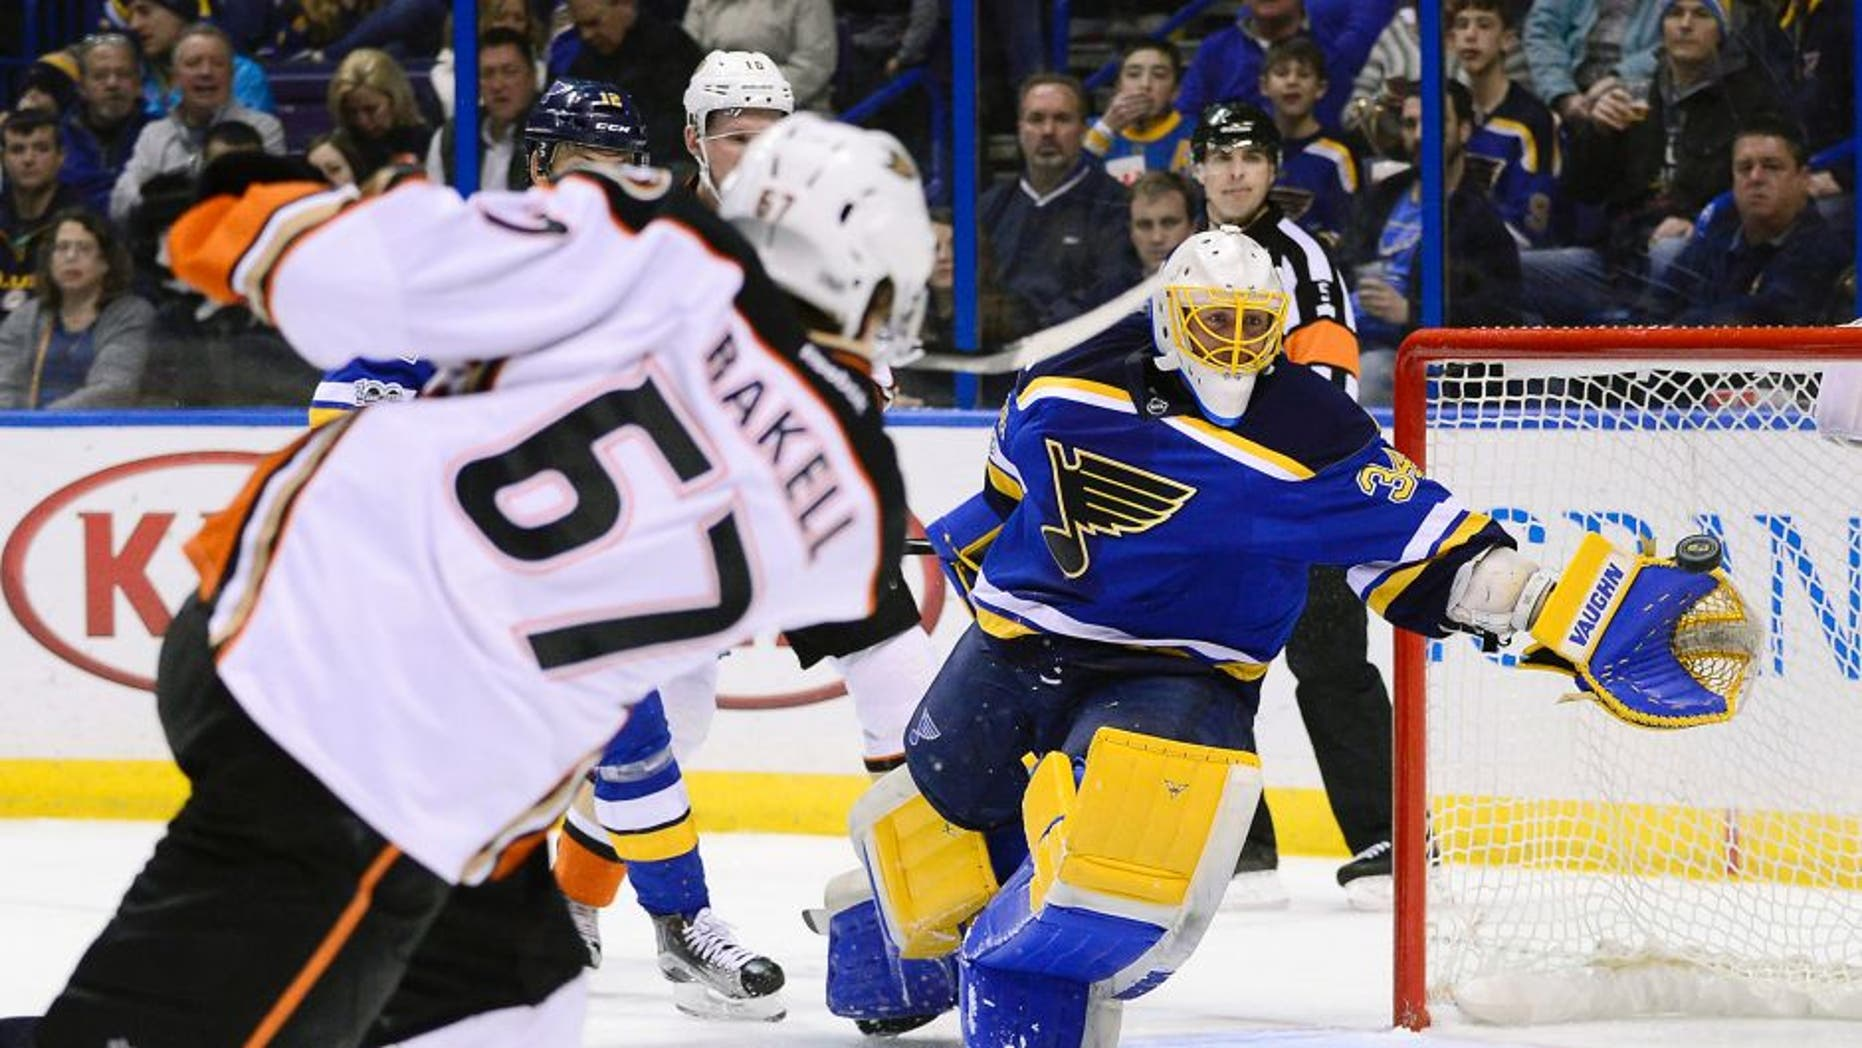 Mar 10, 2017; St. Louis, MO, USA; St. Louis Blues goalie Jake Allen (34) is unable to save a goal scored by Anaheim Ducks center Rickard Rakell (67) during the first period at Scottrade Center. Mandatory Credit: Jeff Curry-USA TODAY Sports